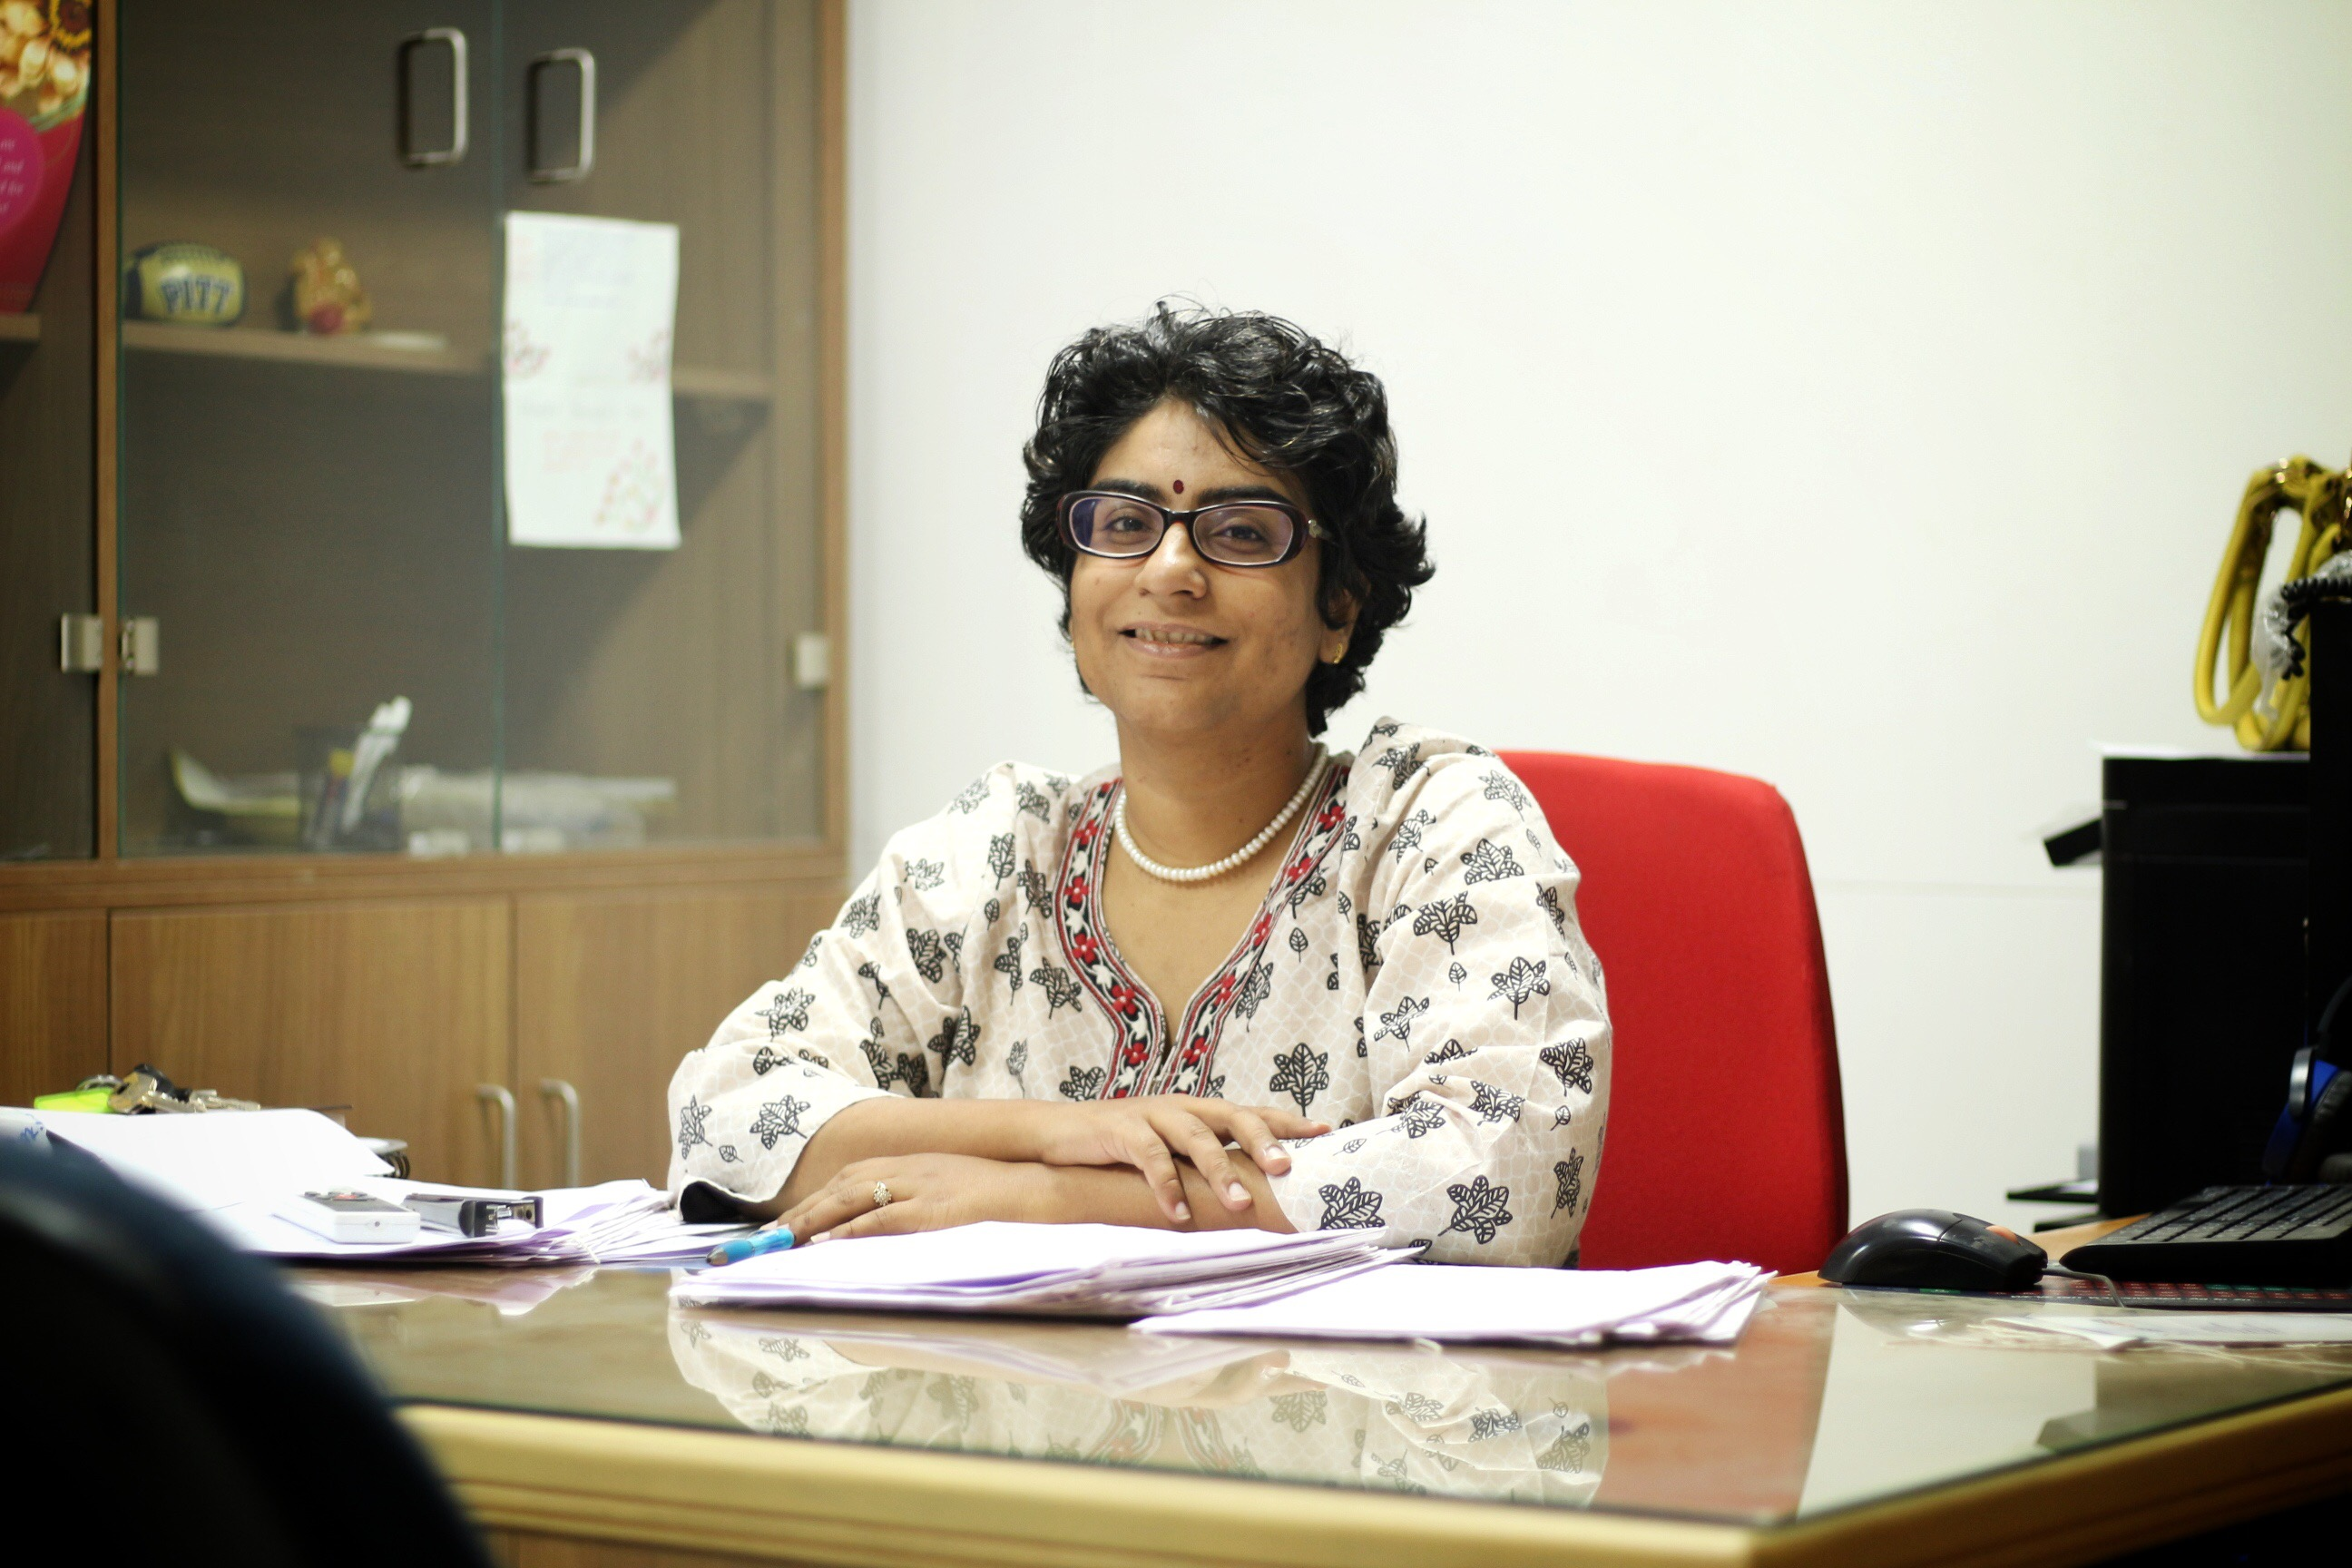 Portrait of Dr. Prachi Thareja